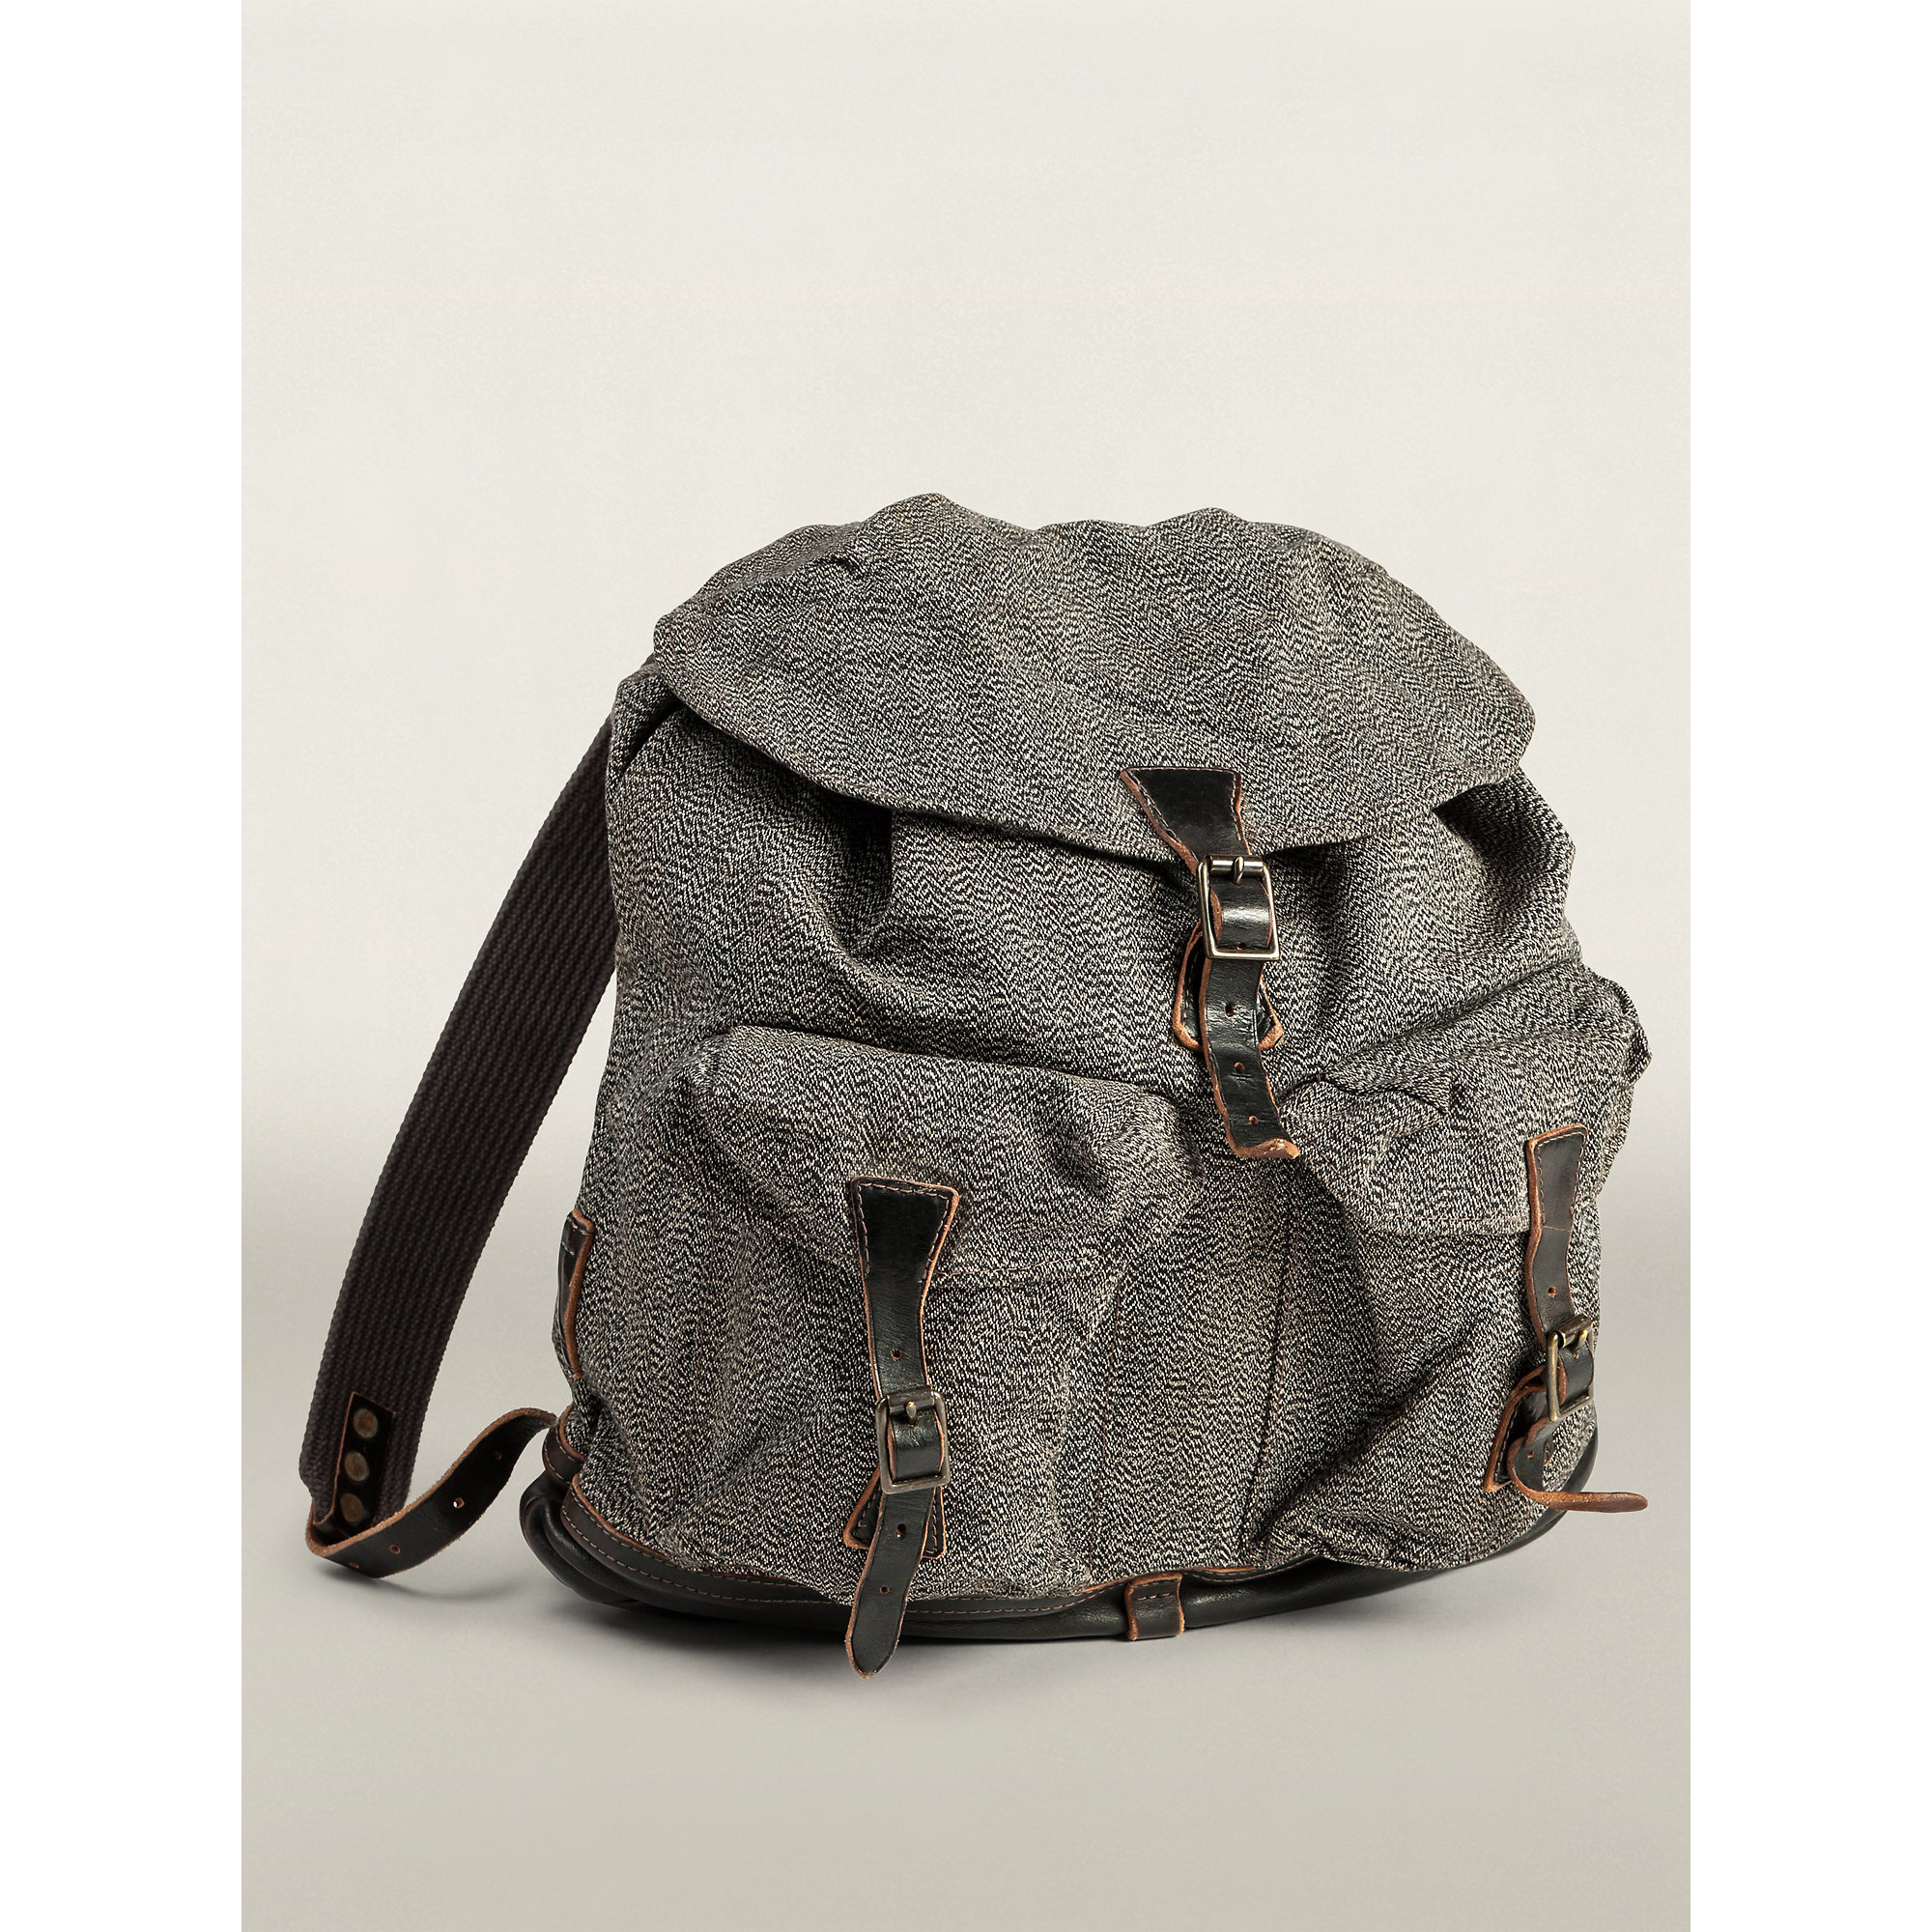 Rrl Canvas Canyon Backpack In Black Cream Brown Black